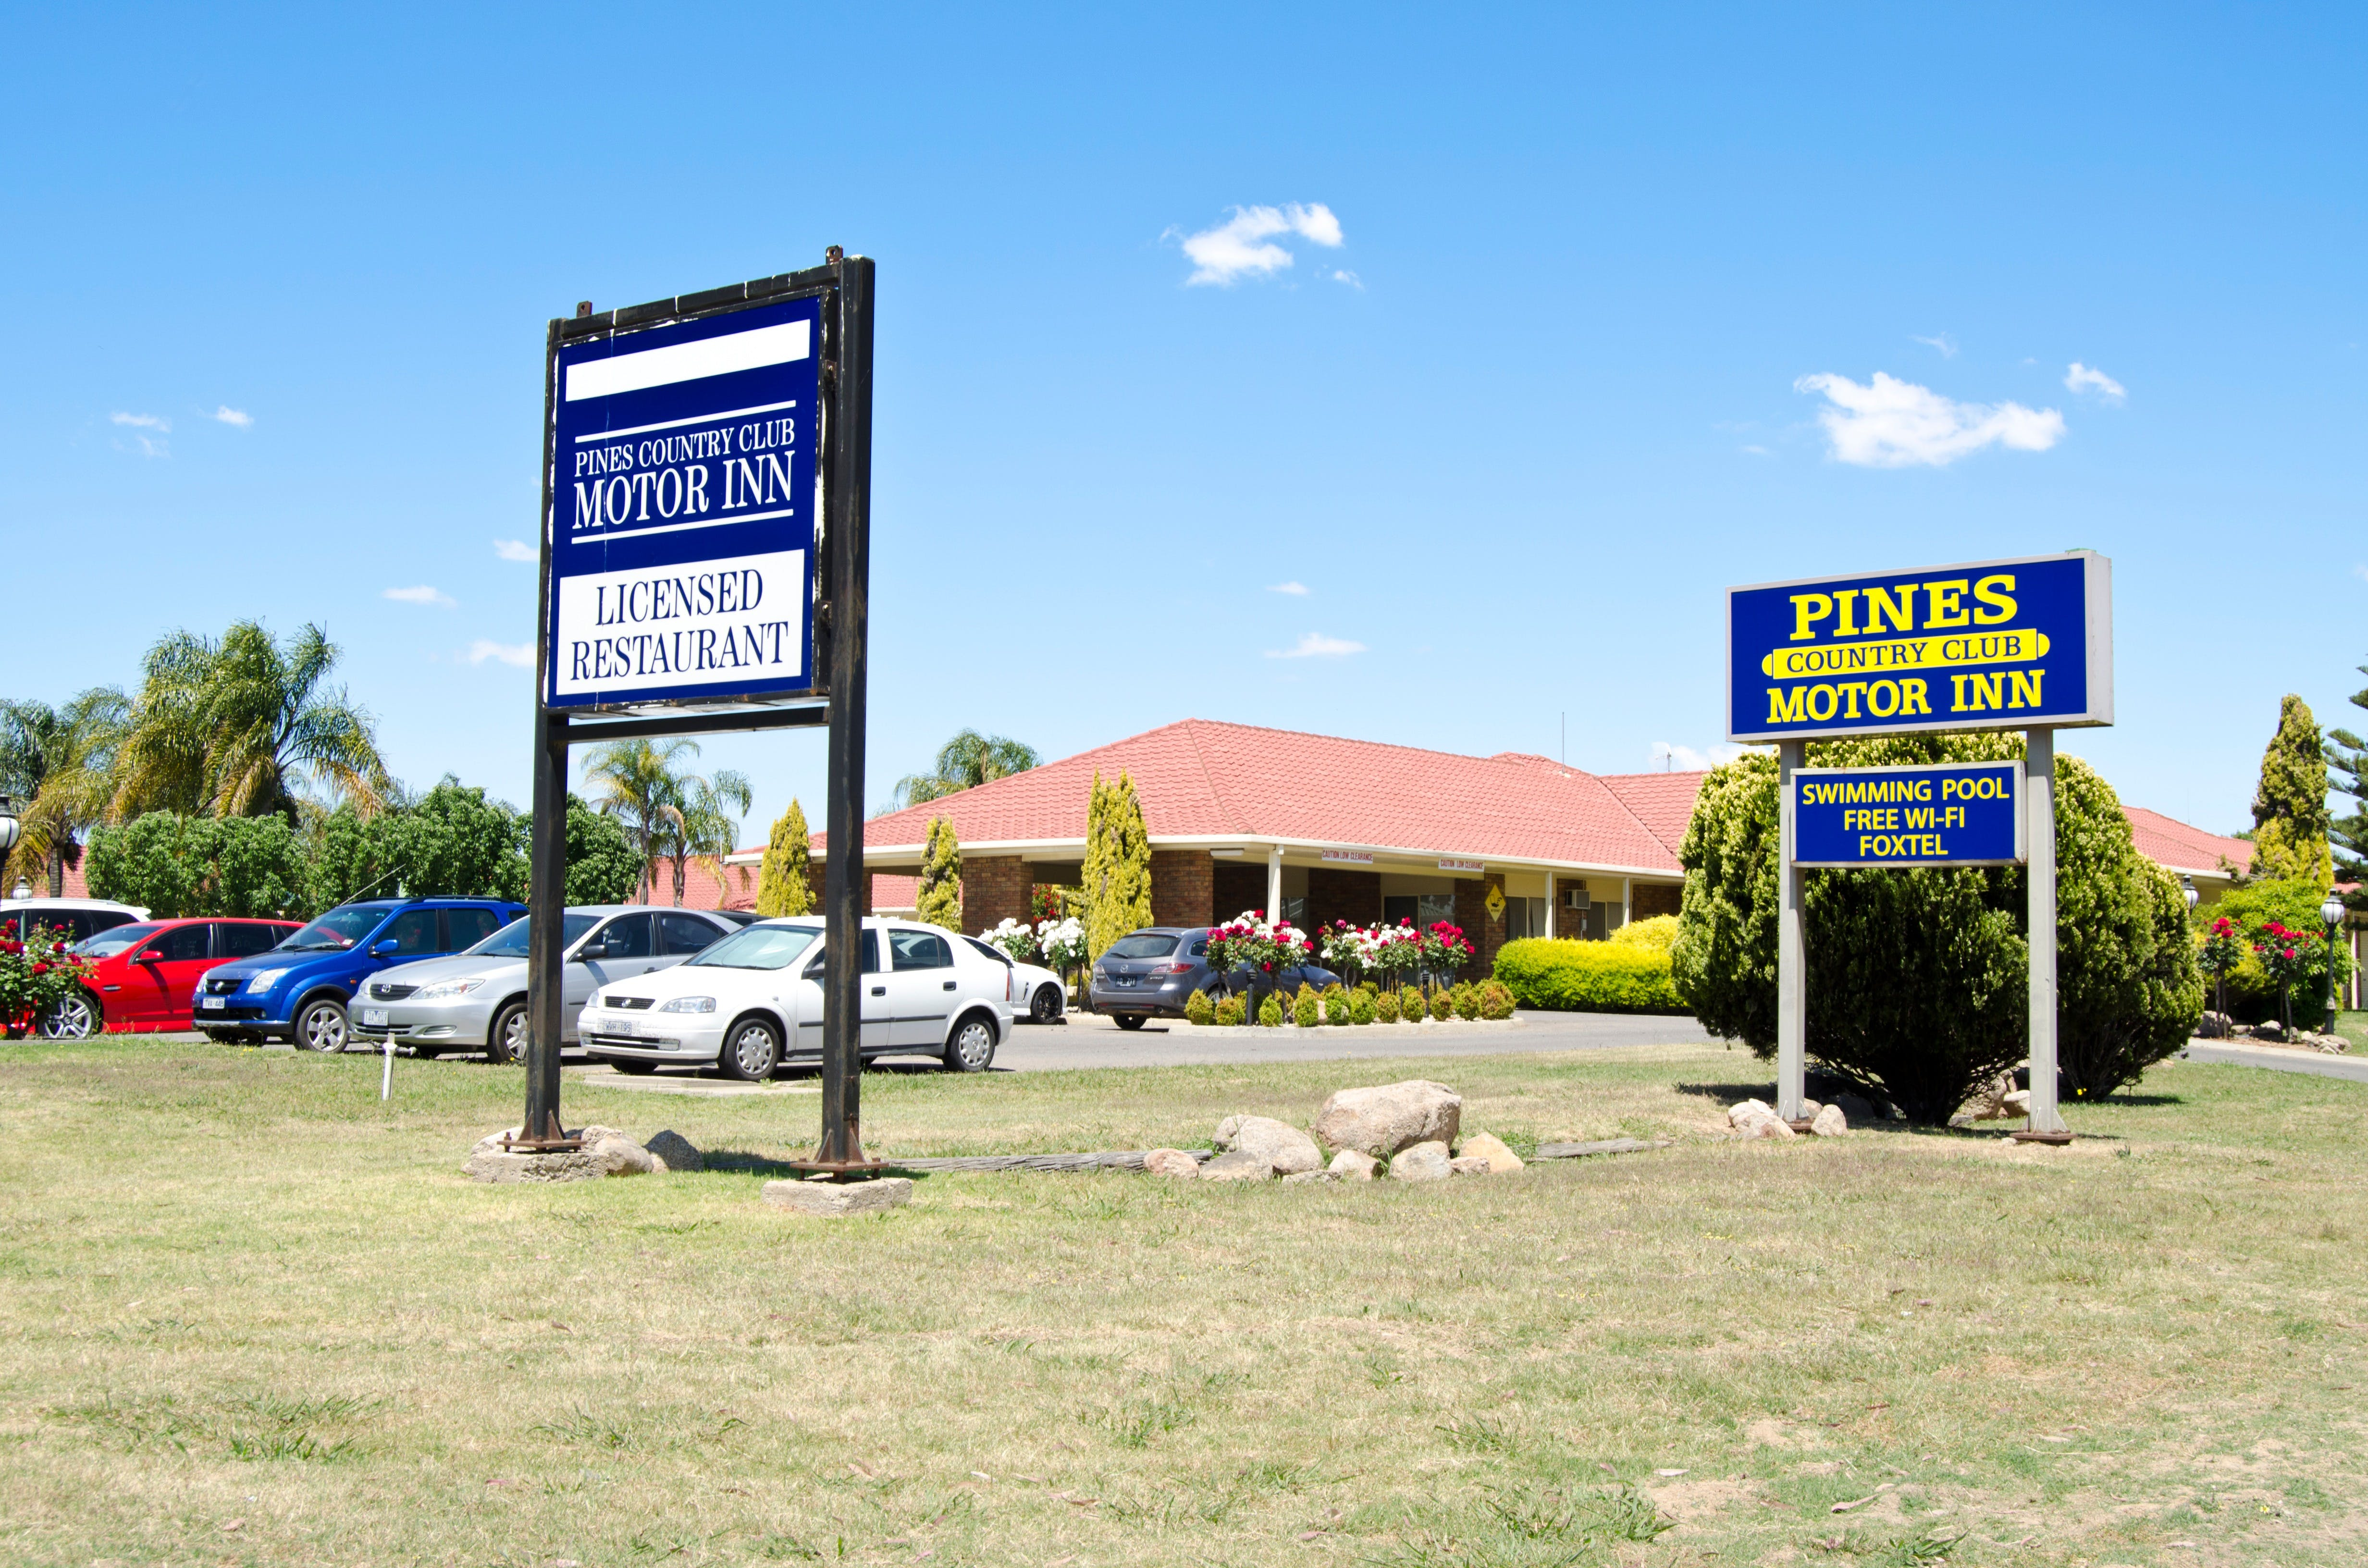 Pines Country Club Motor Inn - Accommodation in Surfers Paradise